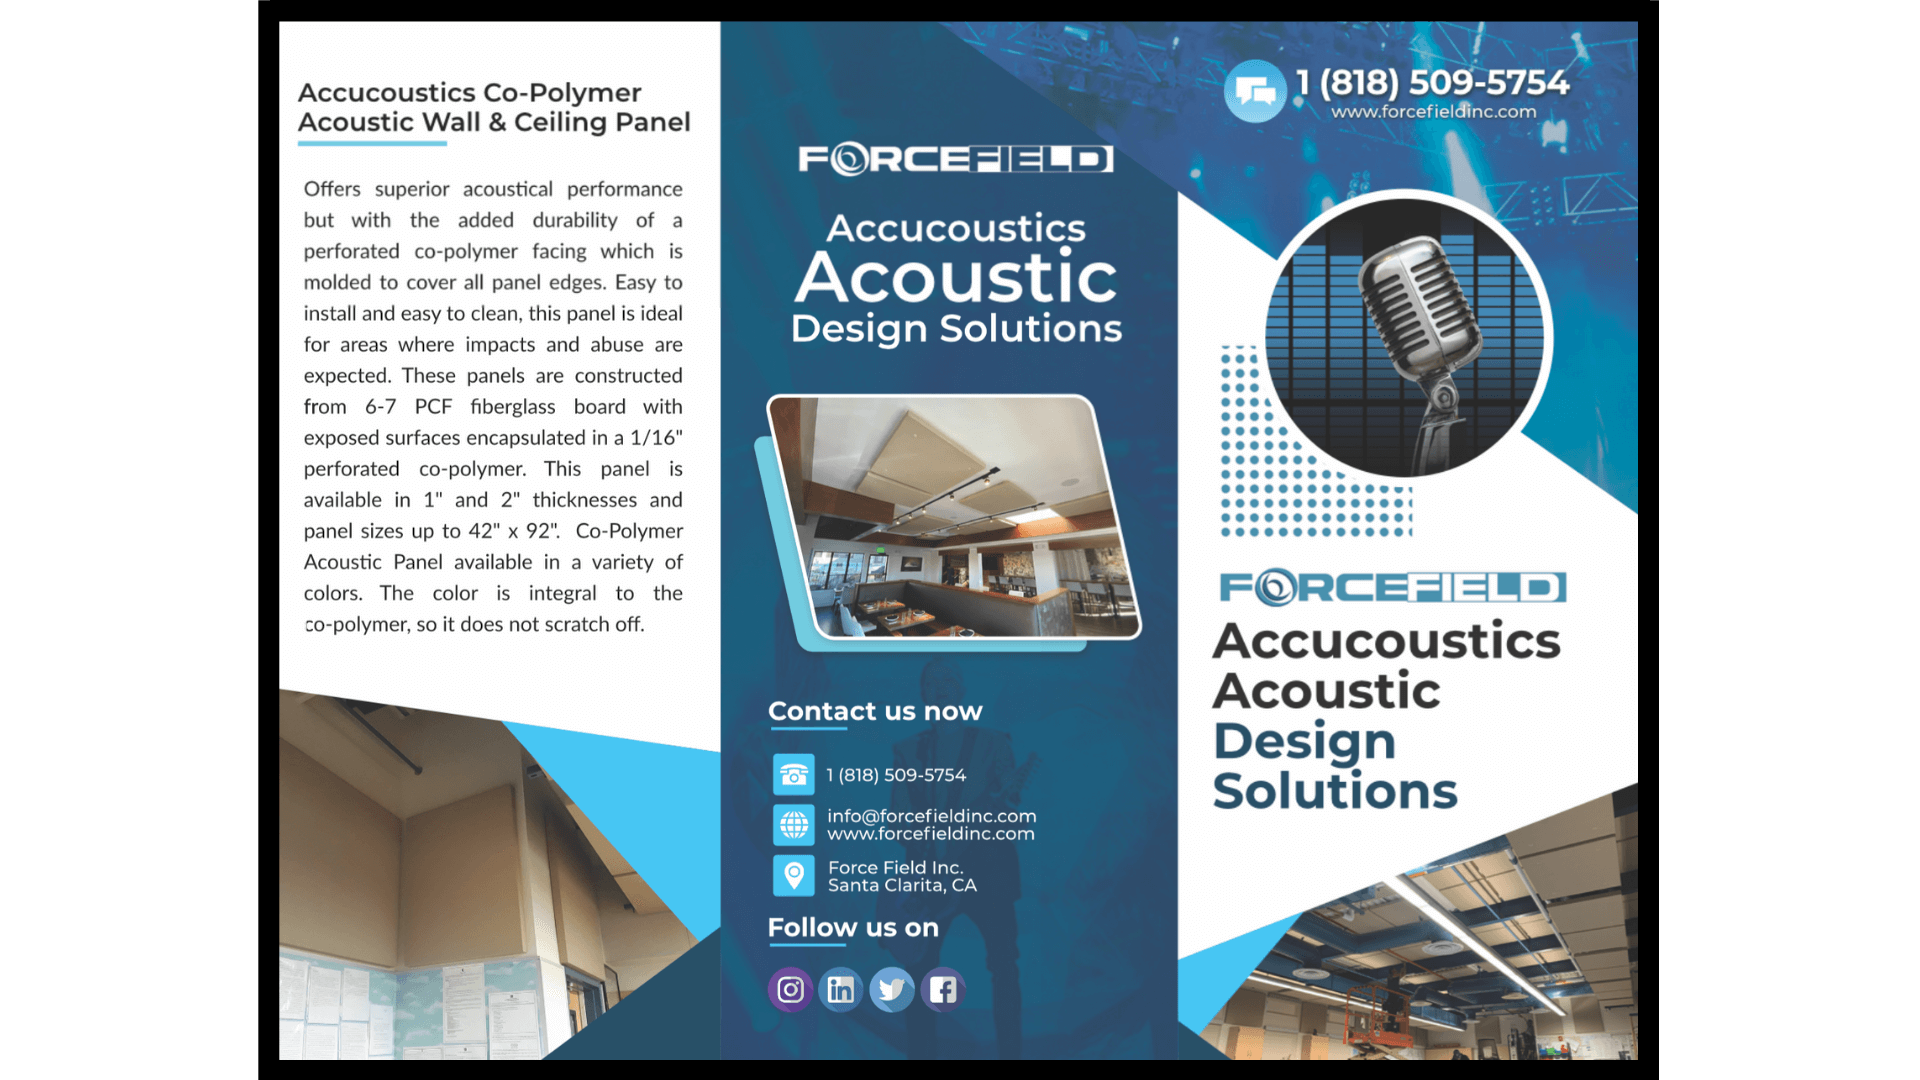 Accucoustics Acoustic Design Solutions